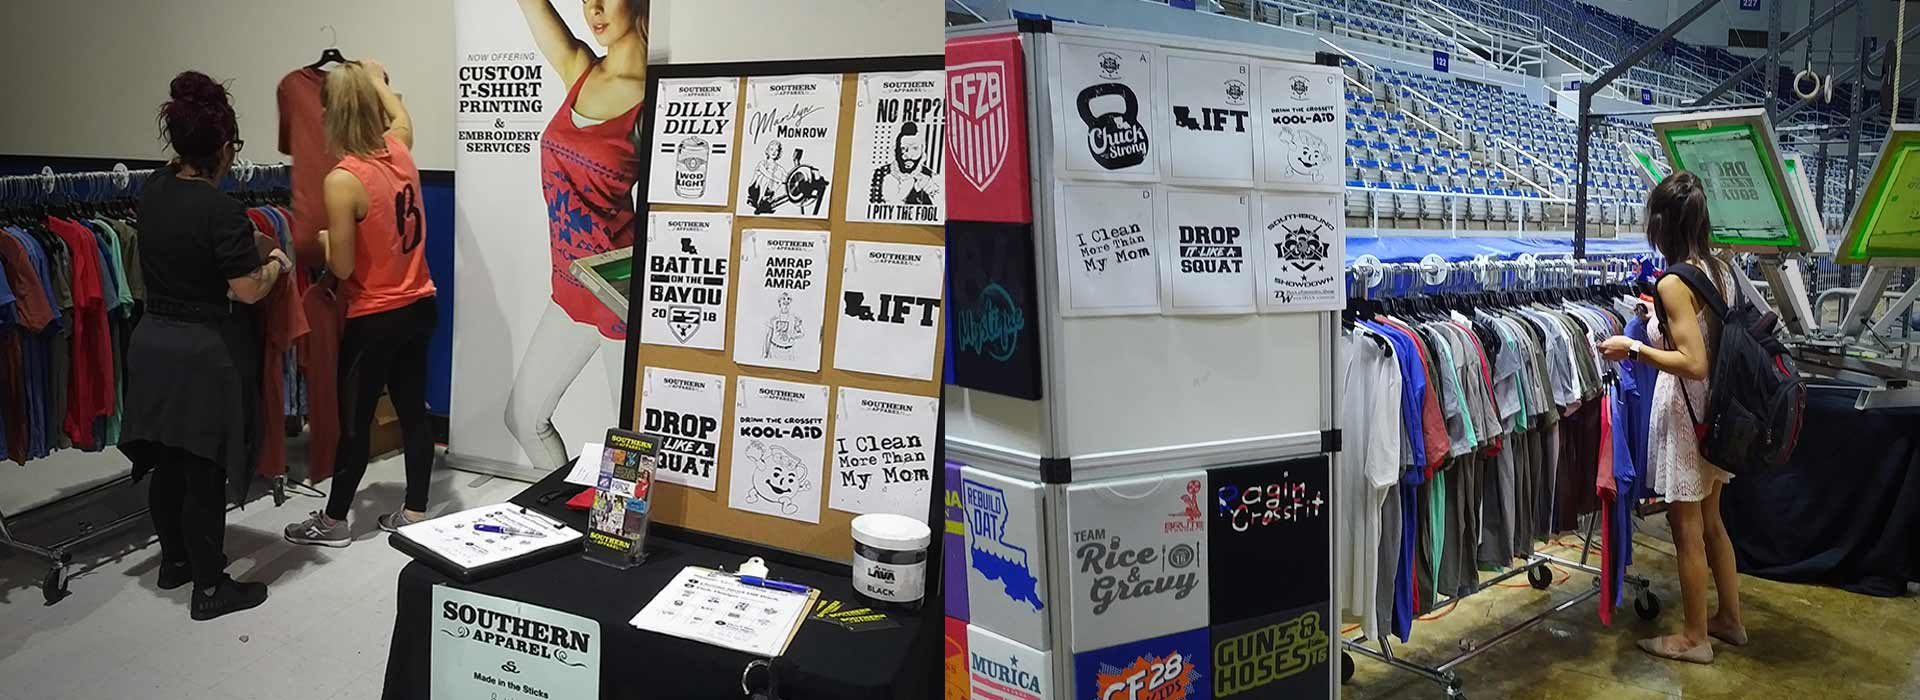 southern-apparel-wod-merch-live-event-printing